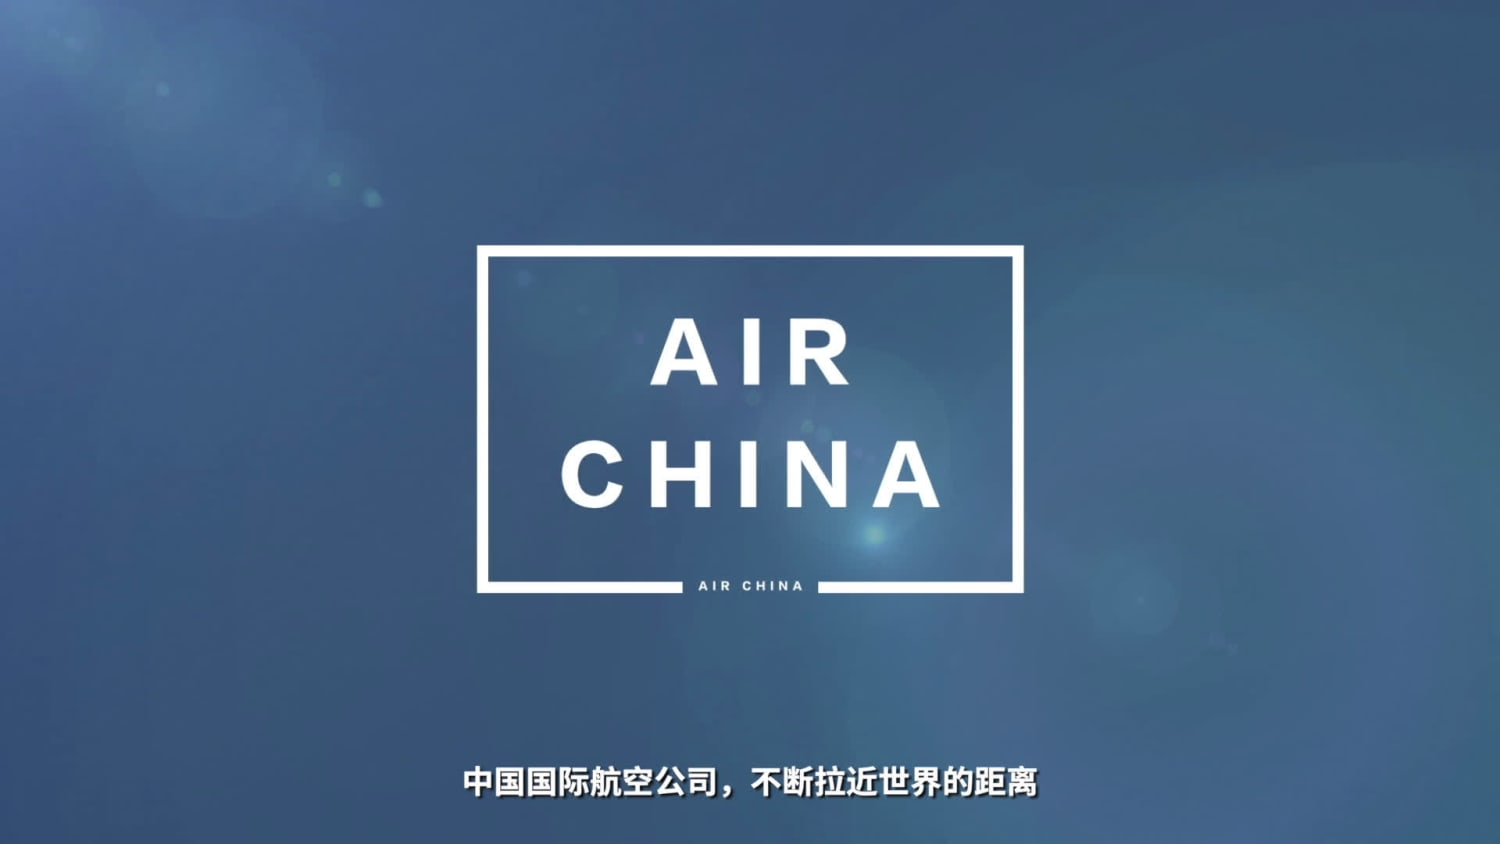 Beijing Office Air China Land Your Dream Campagin 2018 case video